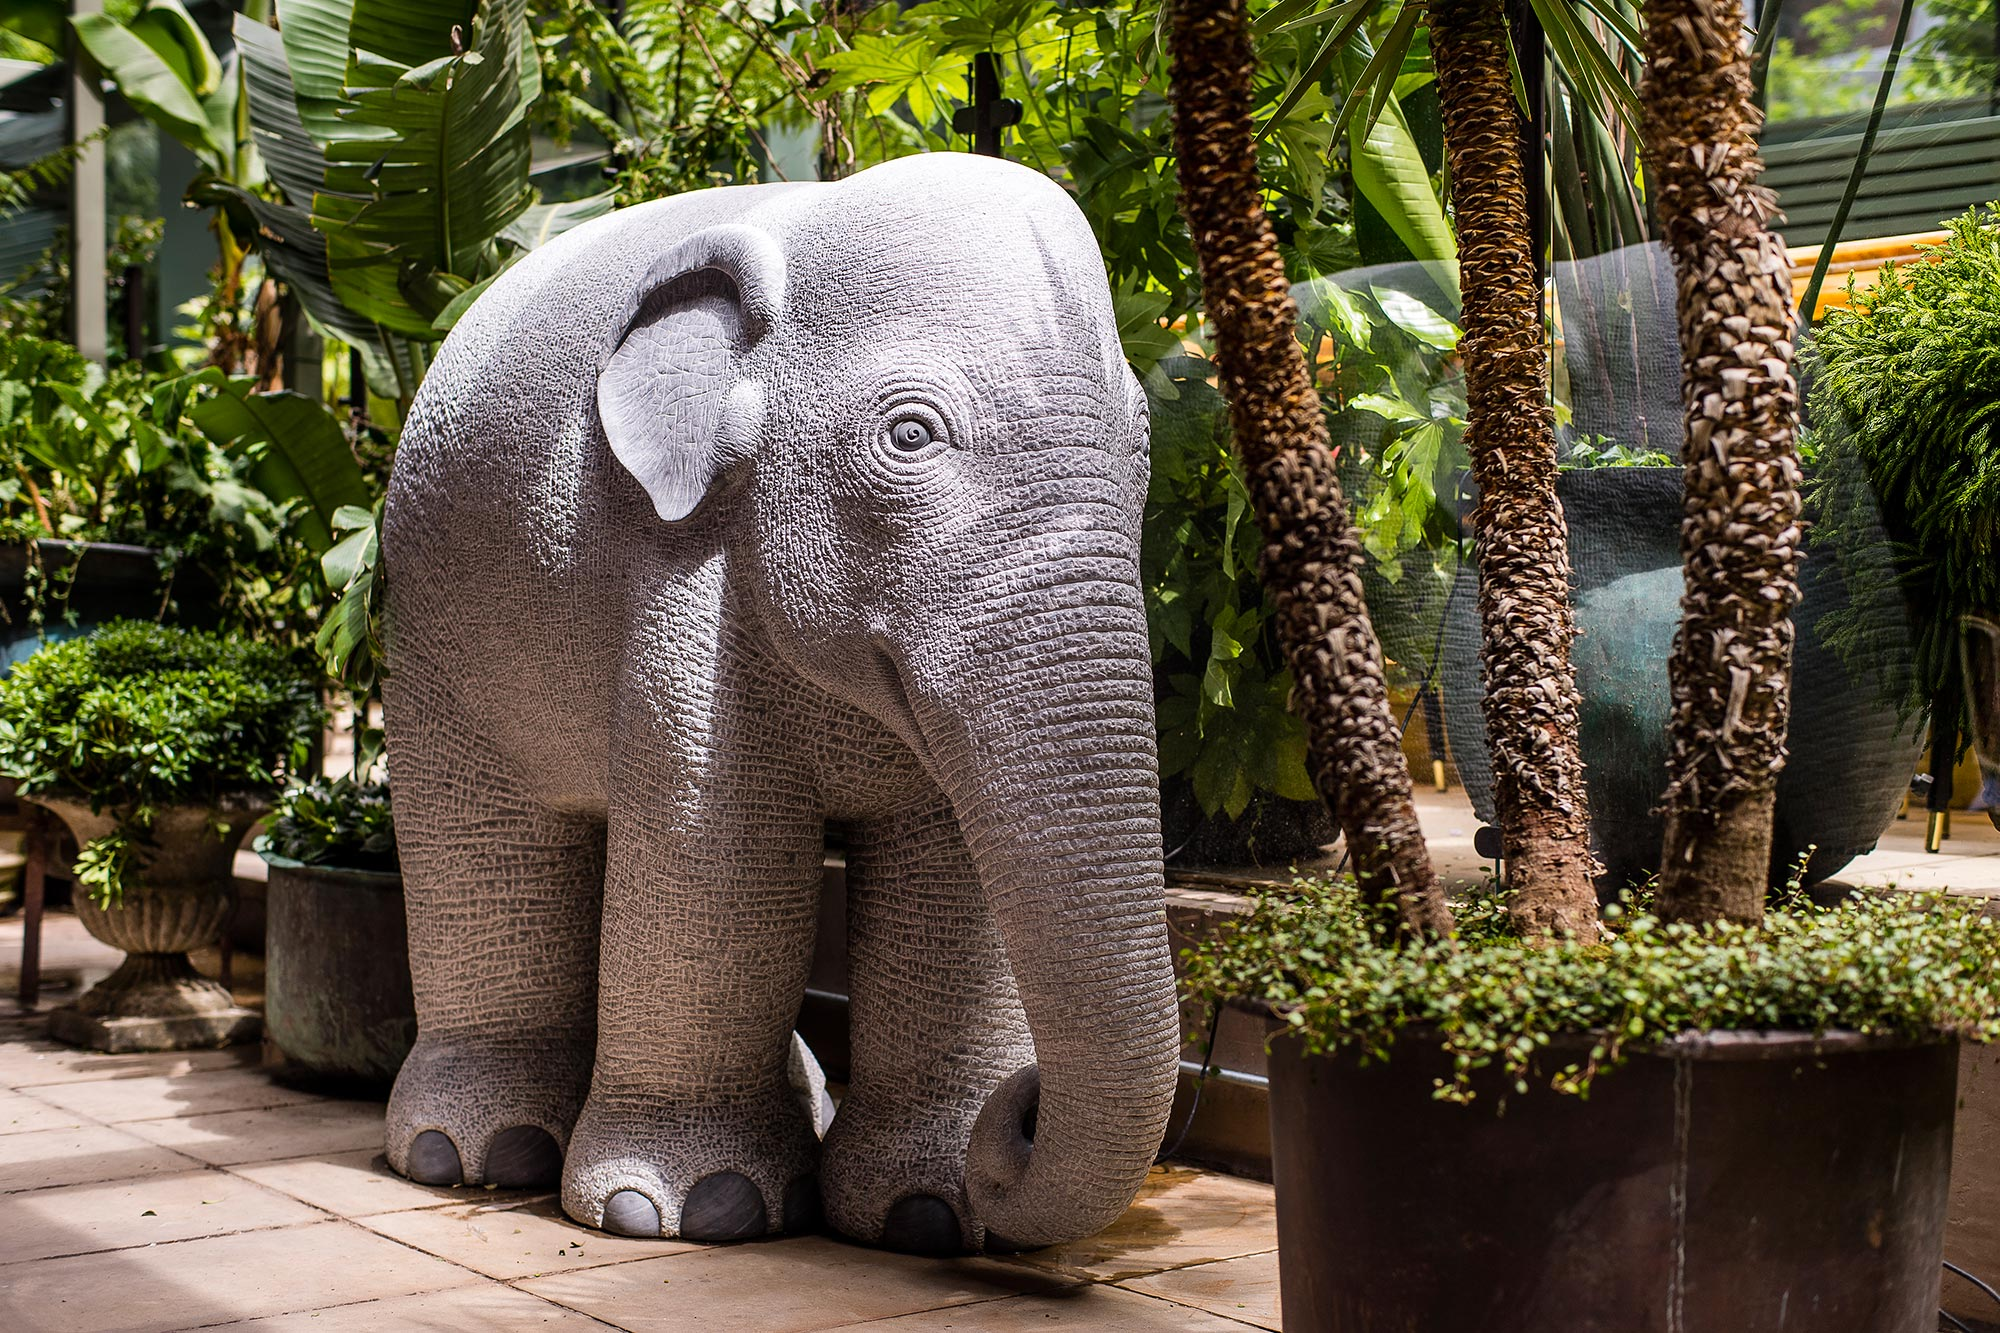 The Ivy City Garden - Elephant - The Ivy City Garden